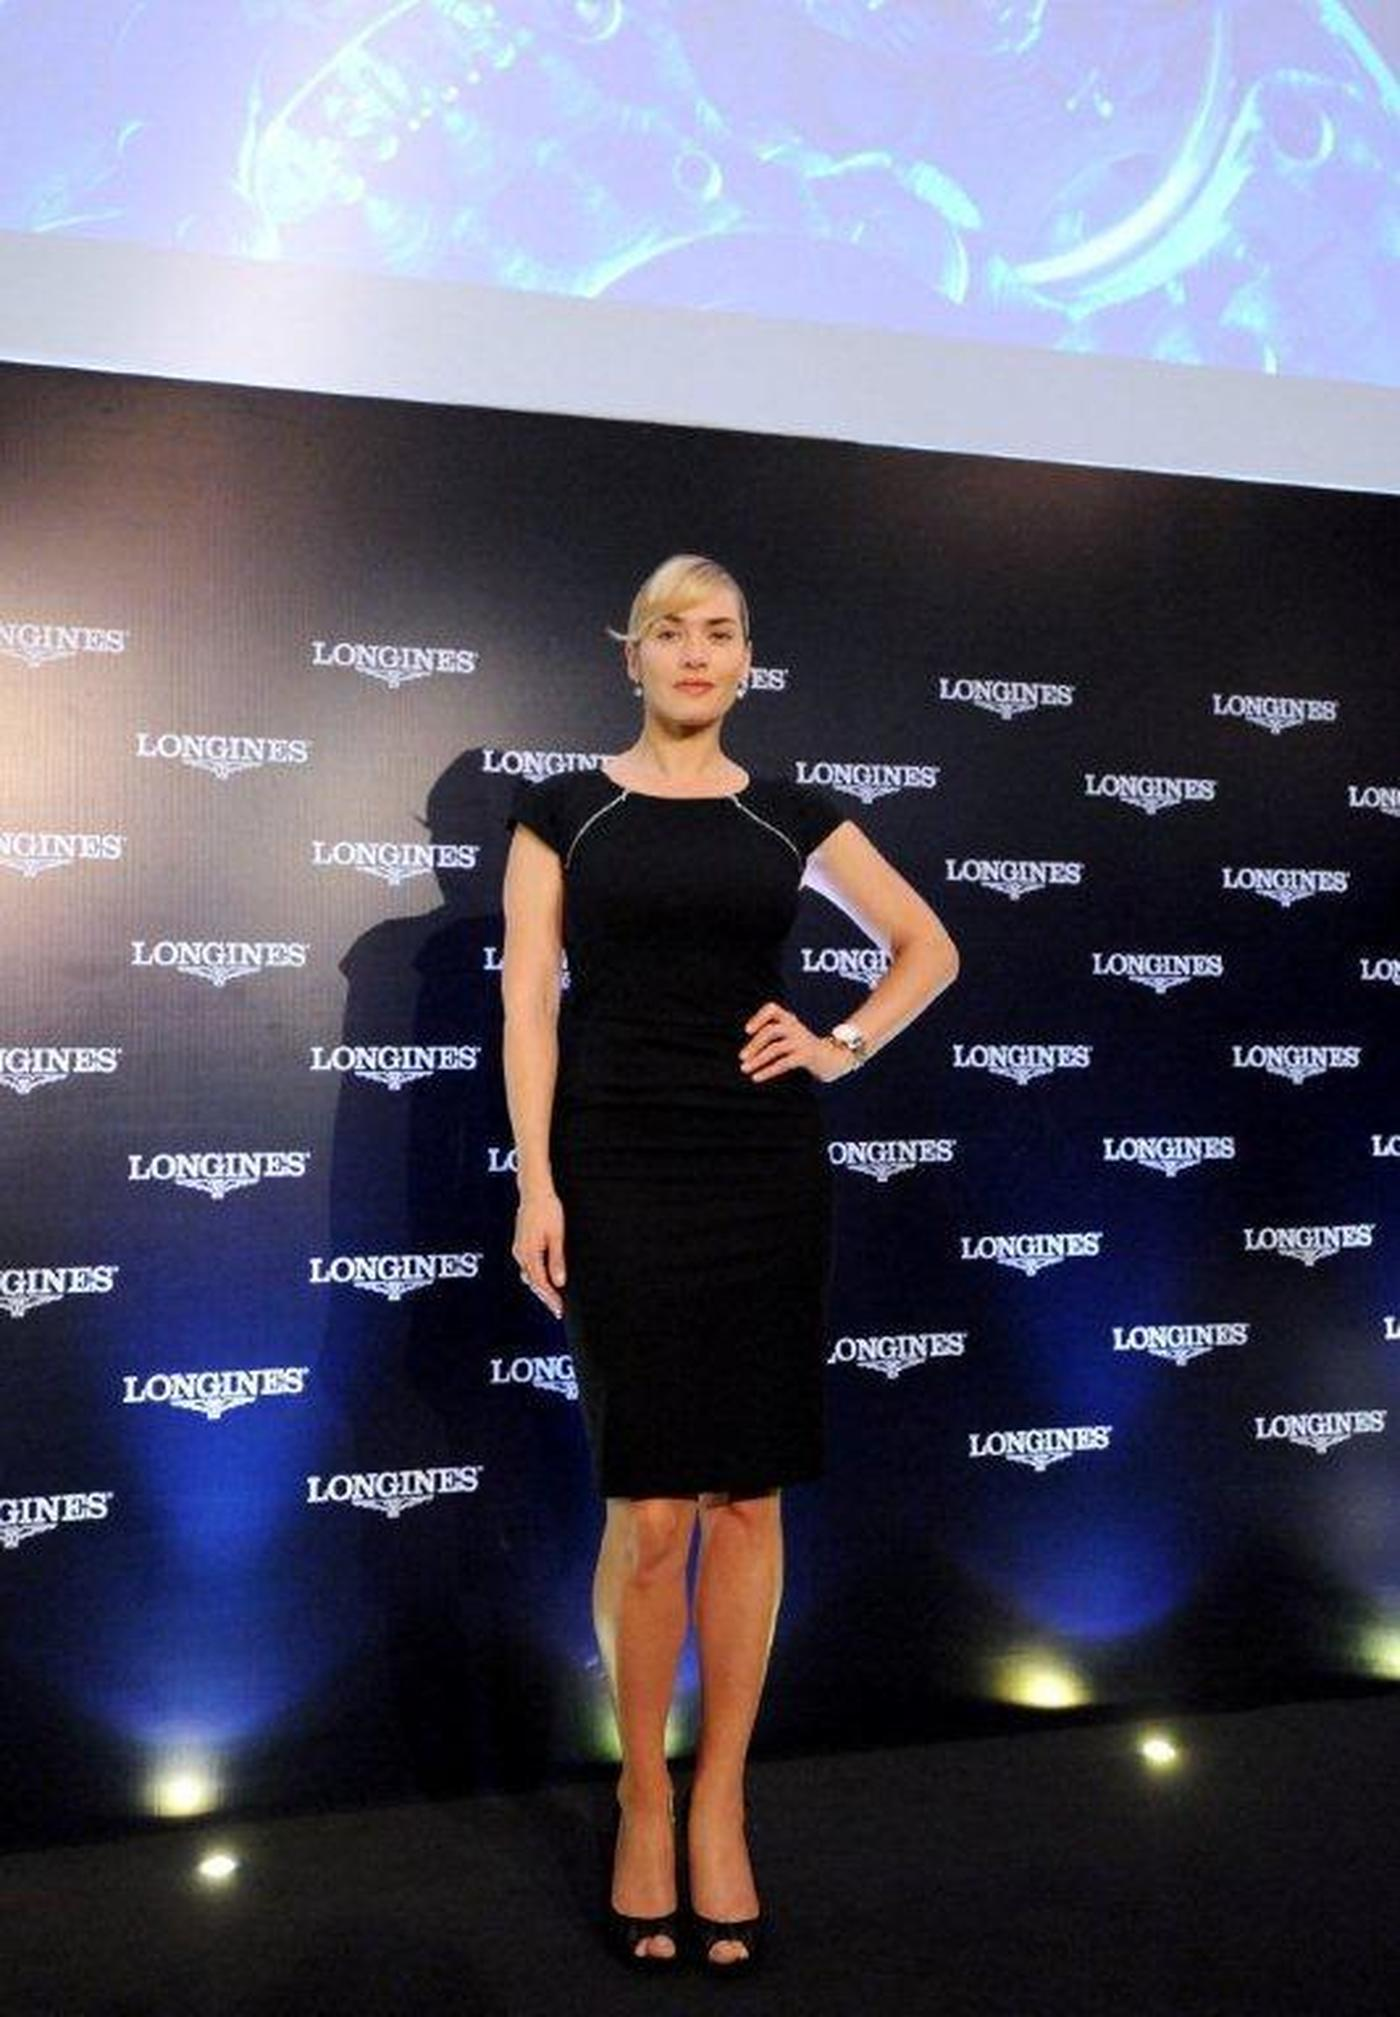 Longines Corporate Event: Kate Winslet reveals the new Longines Saint-Imier Collection in Shanghai 16